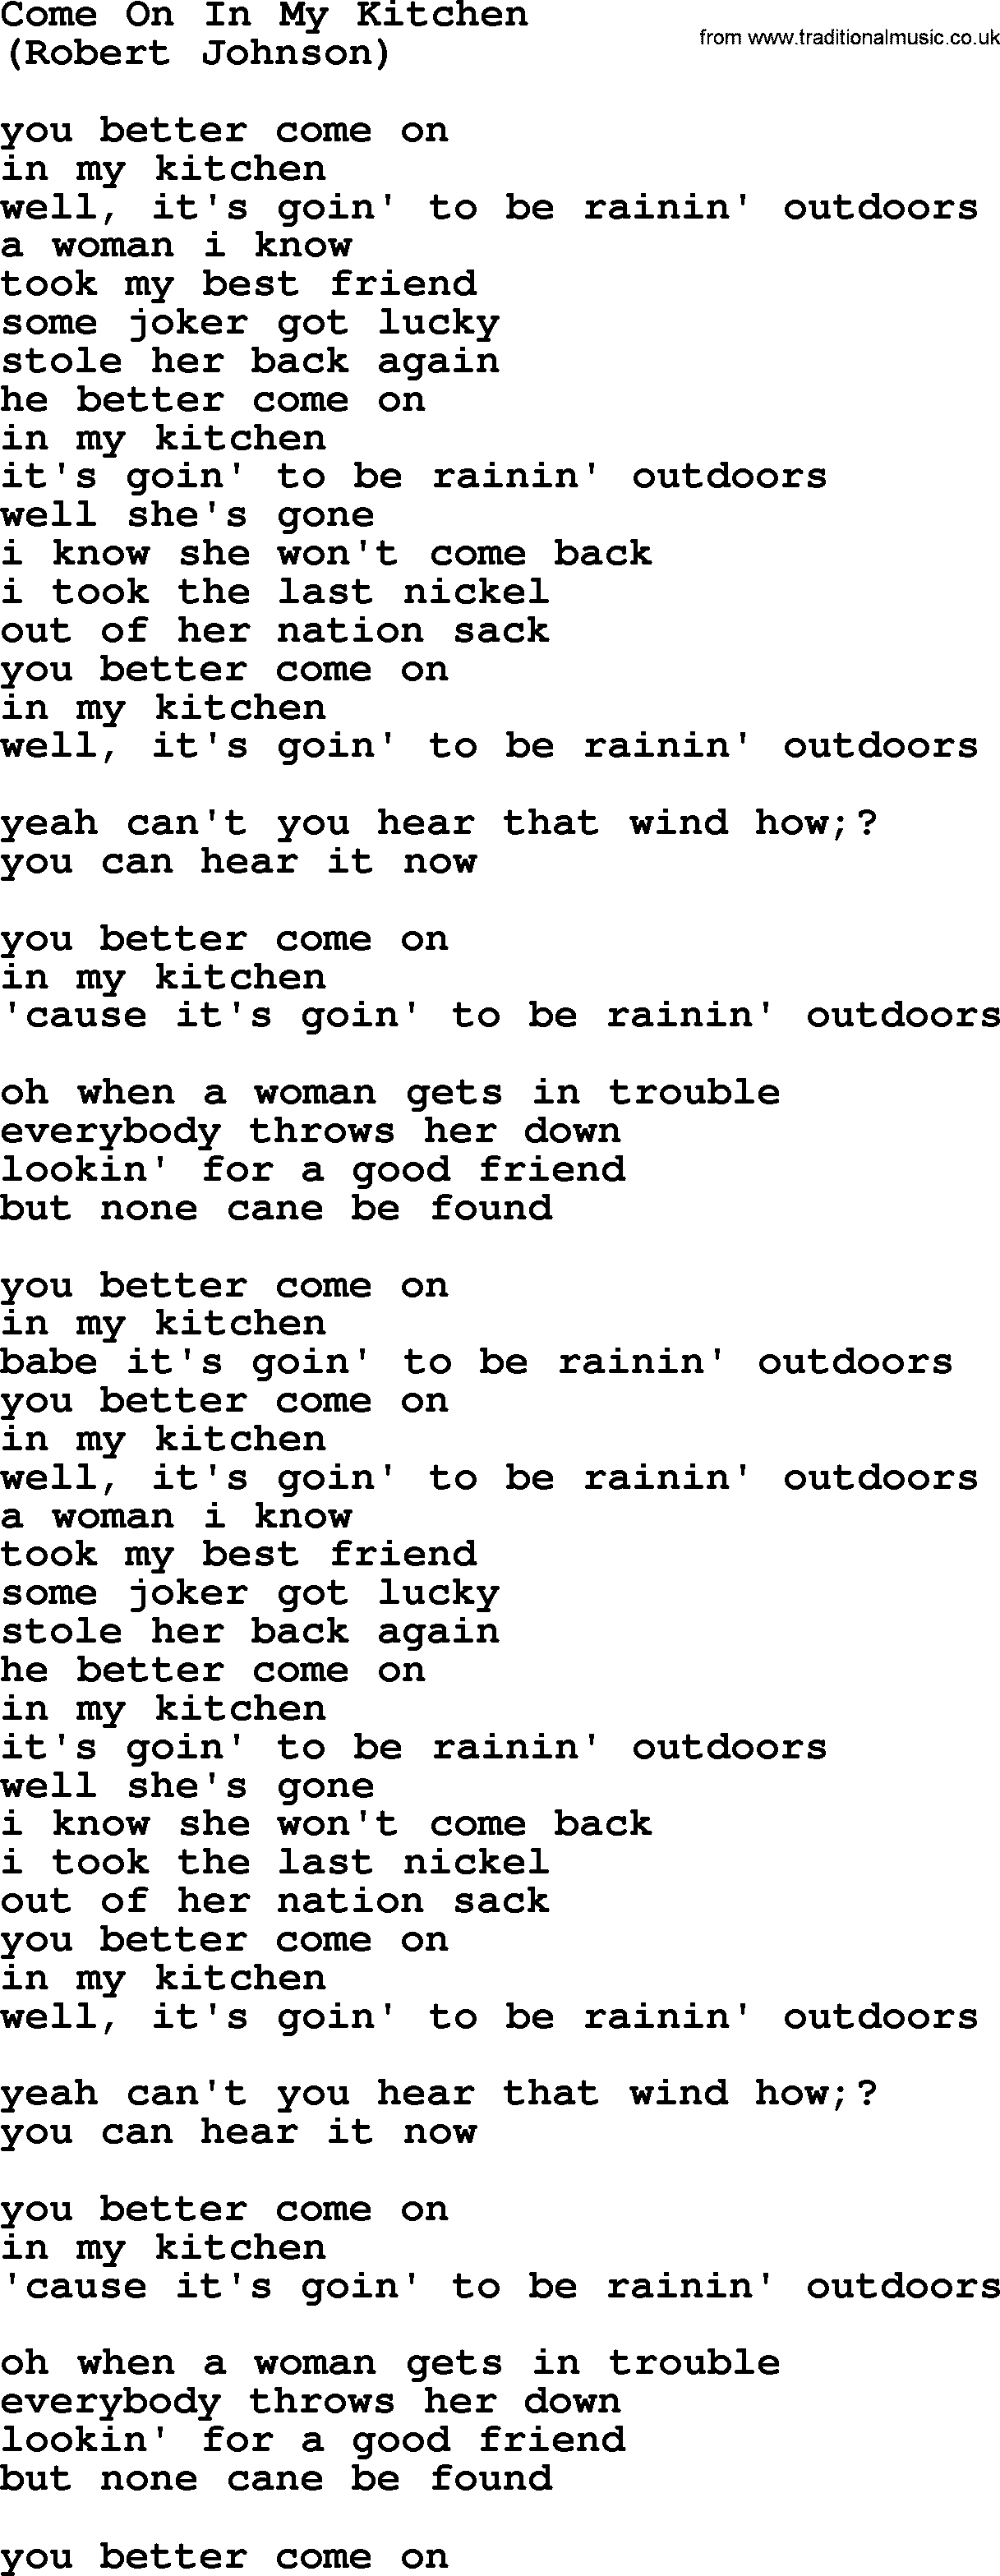 Come On In My Kitchen, by The Byrds - lyrics with pdf